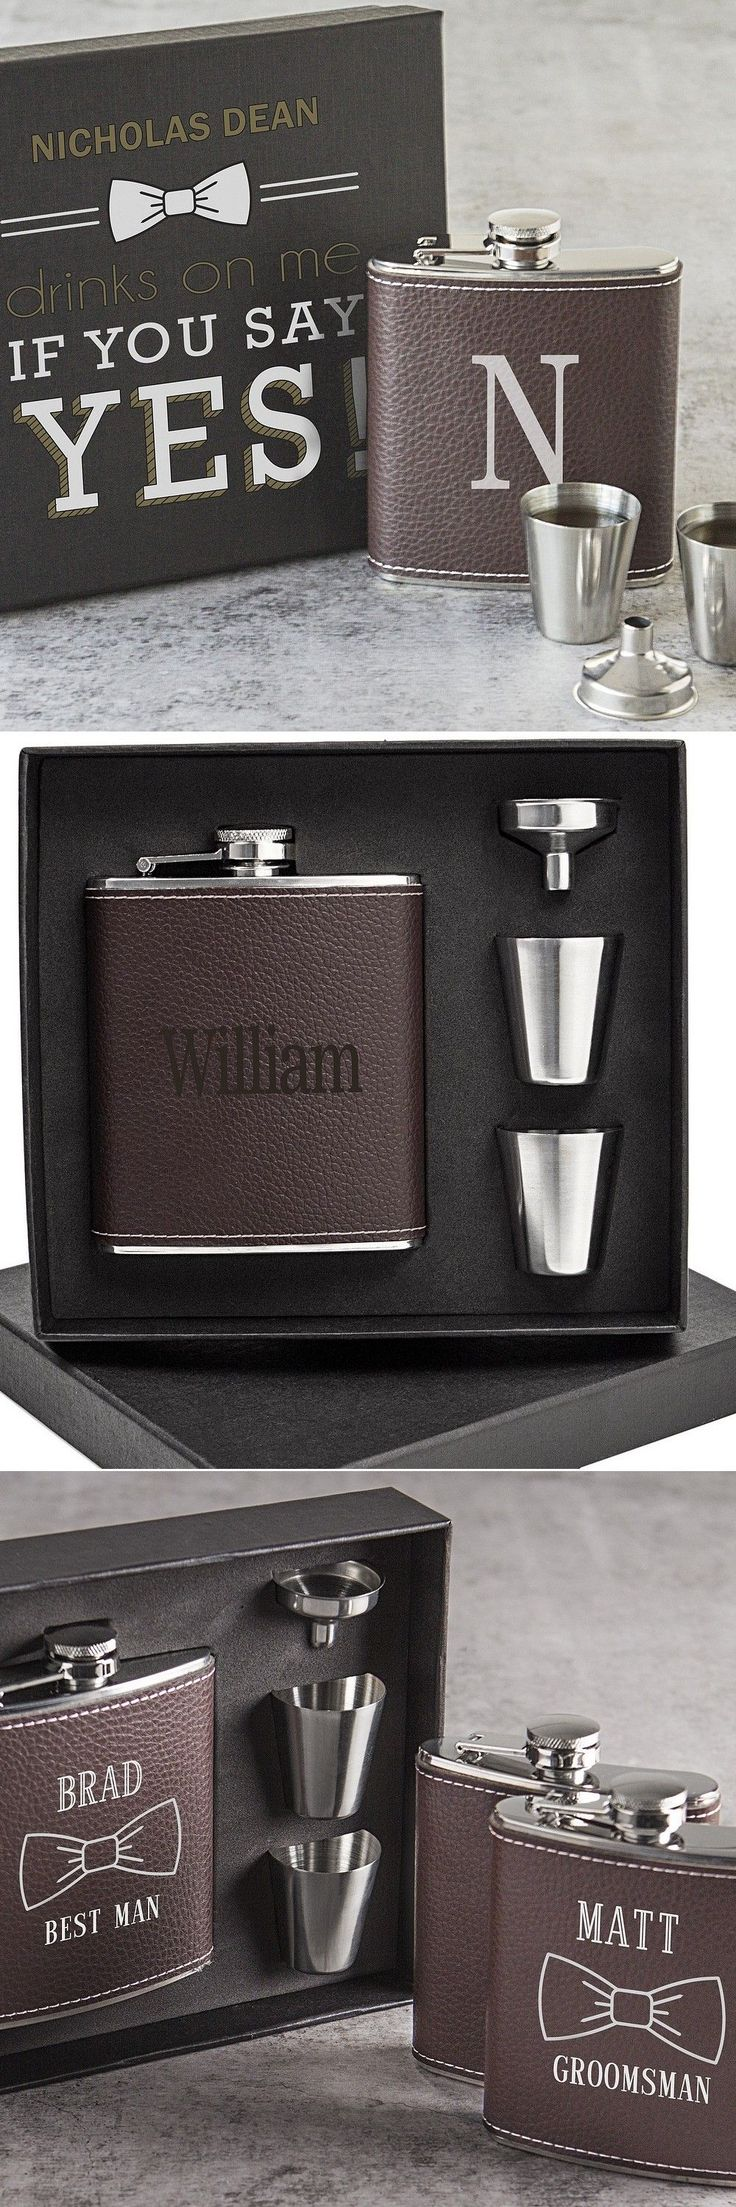 Groomsmen Gifts Idea - Hip flasks personalized with your best man and groomsmen's names or initial is a timeless functional gift they guys in your wedding party will actually use. #groomsmengifts